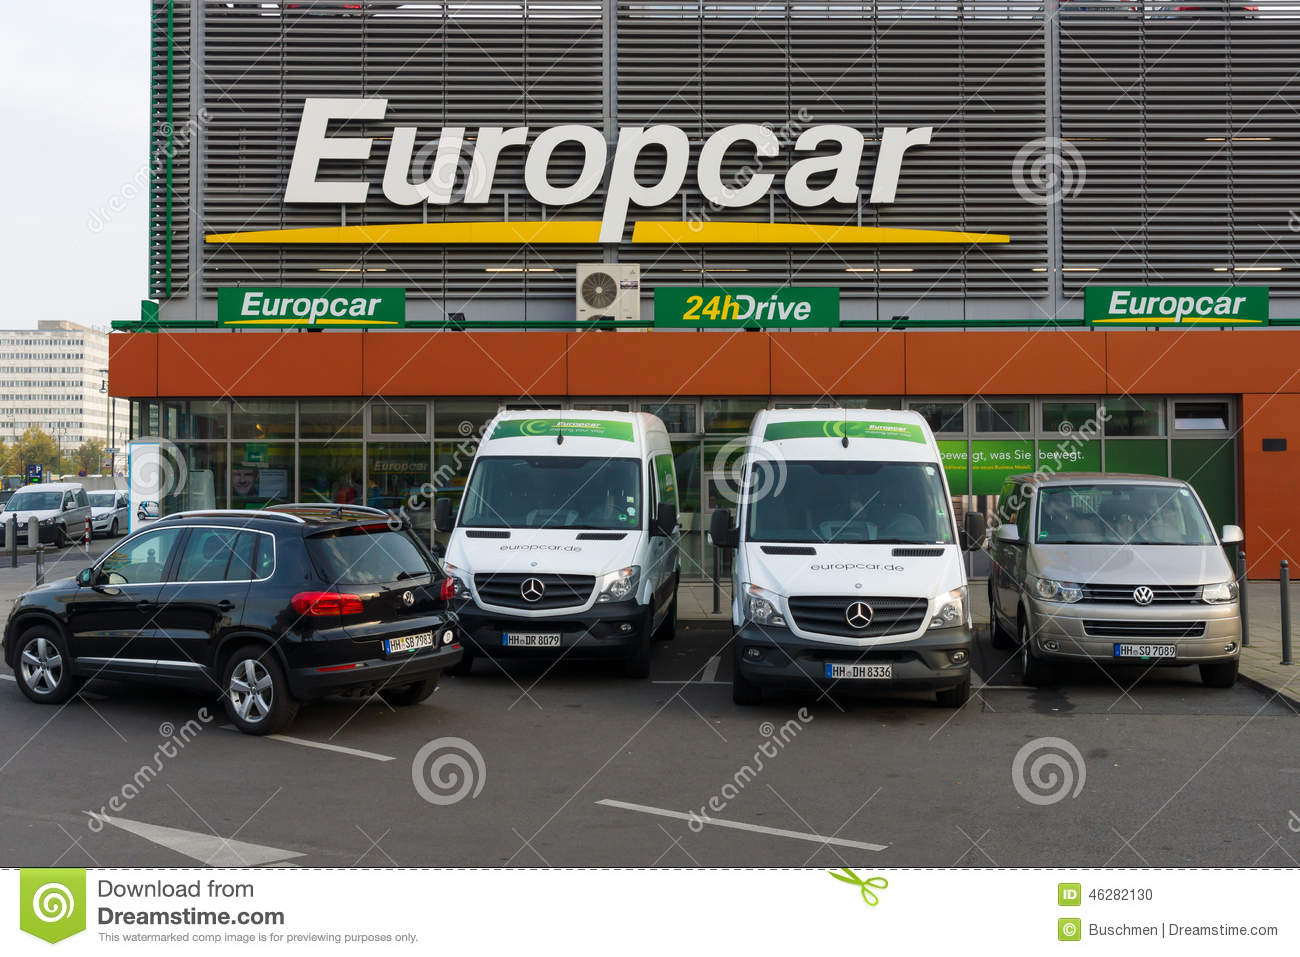 europcar is a car rental company owned by eurazeo editorial image image 46282130. Black Bedroom Furniture Sets. Home Design Ideas